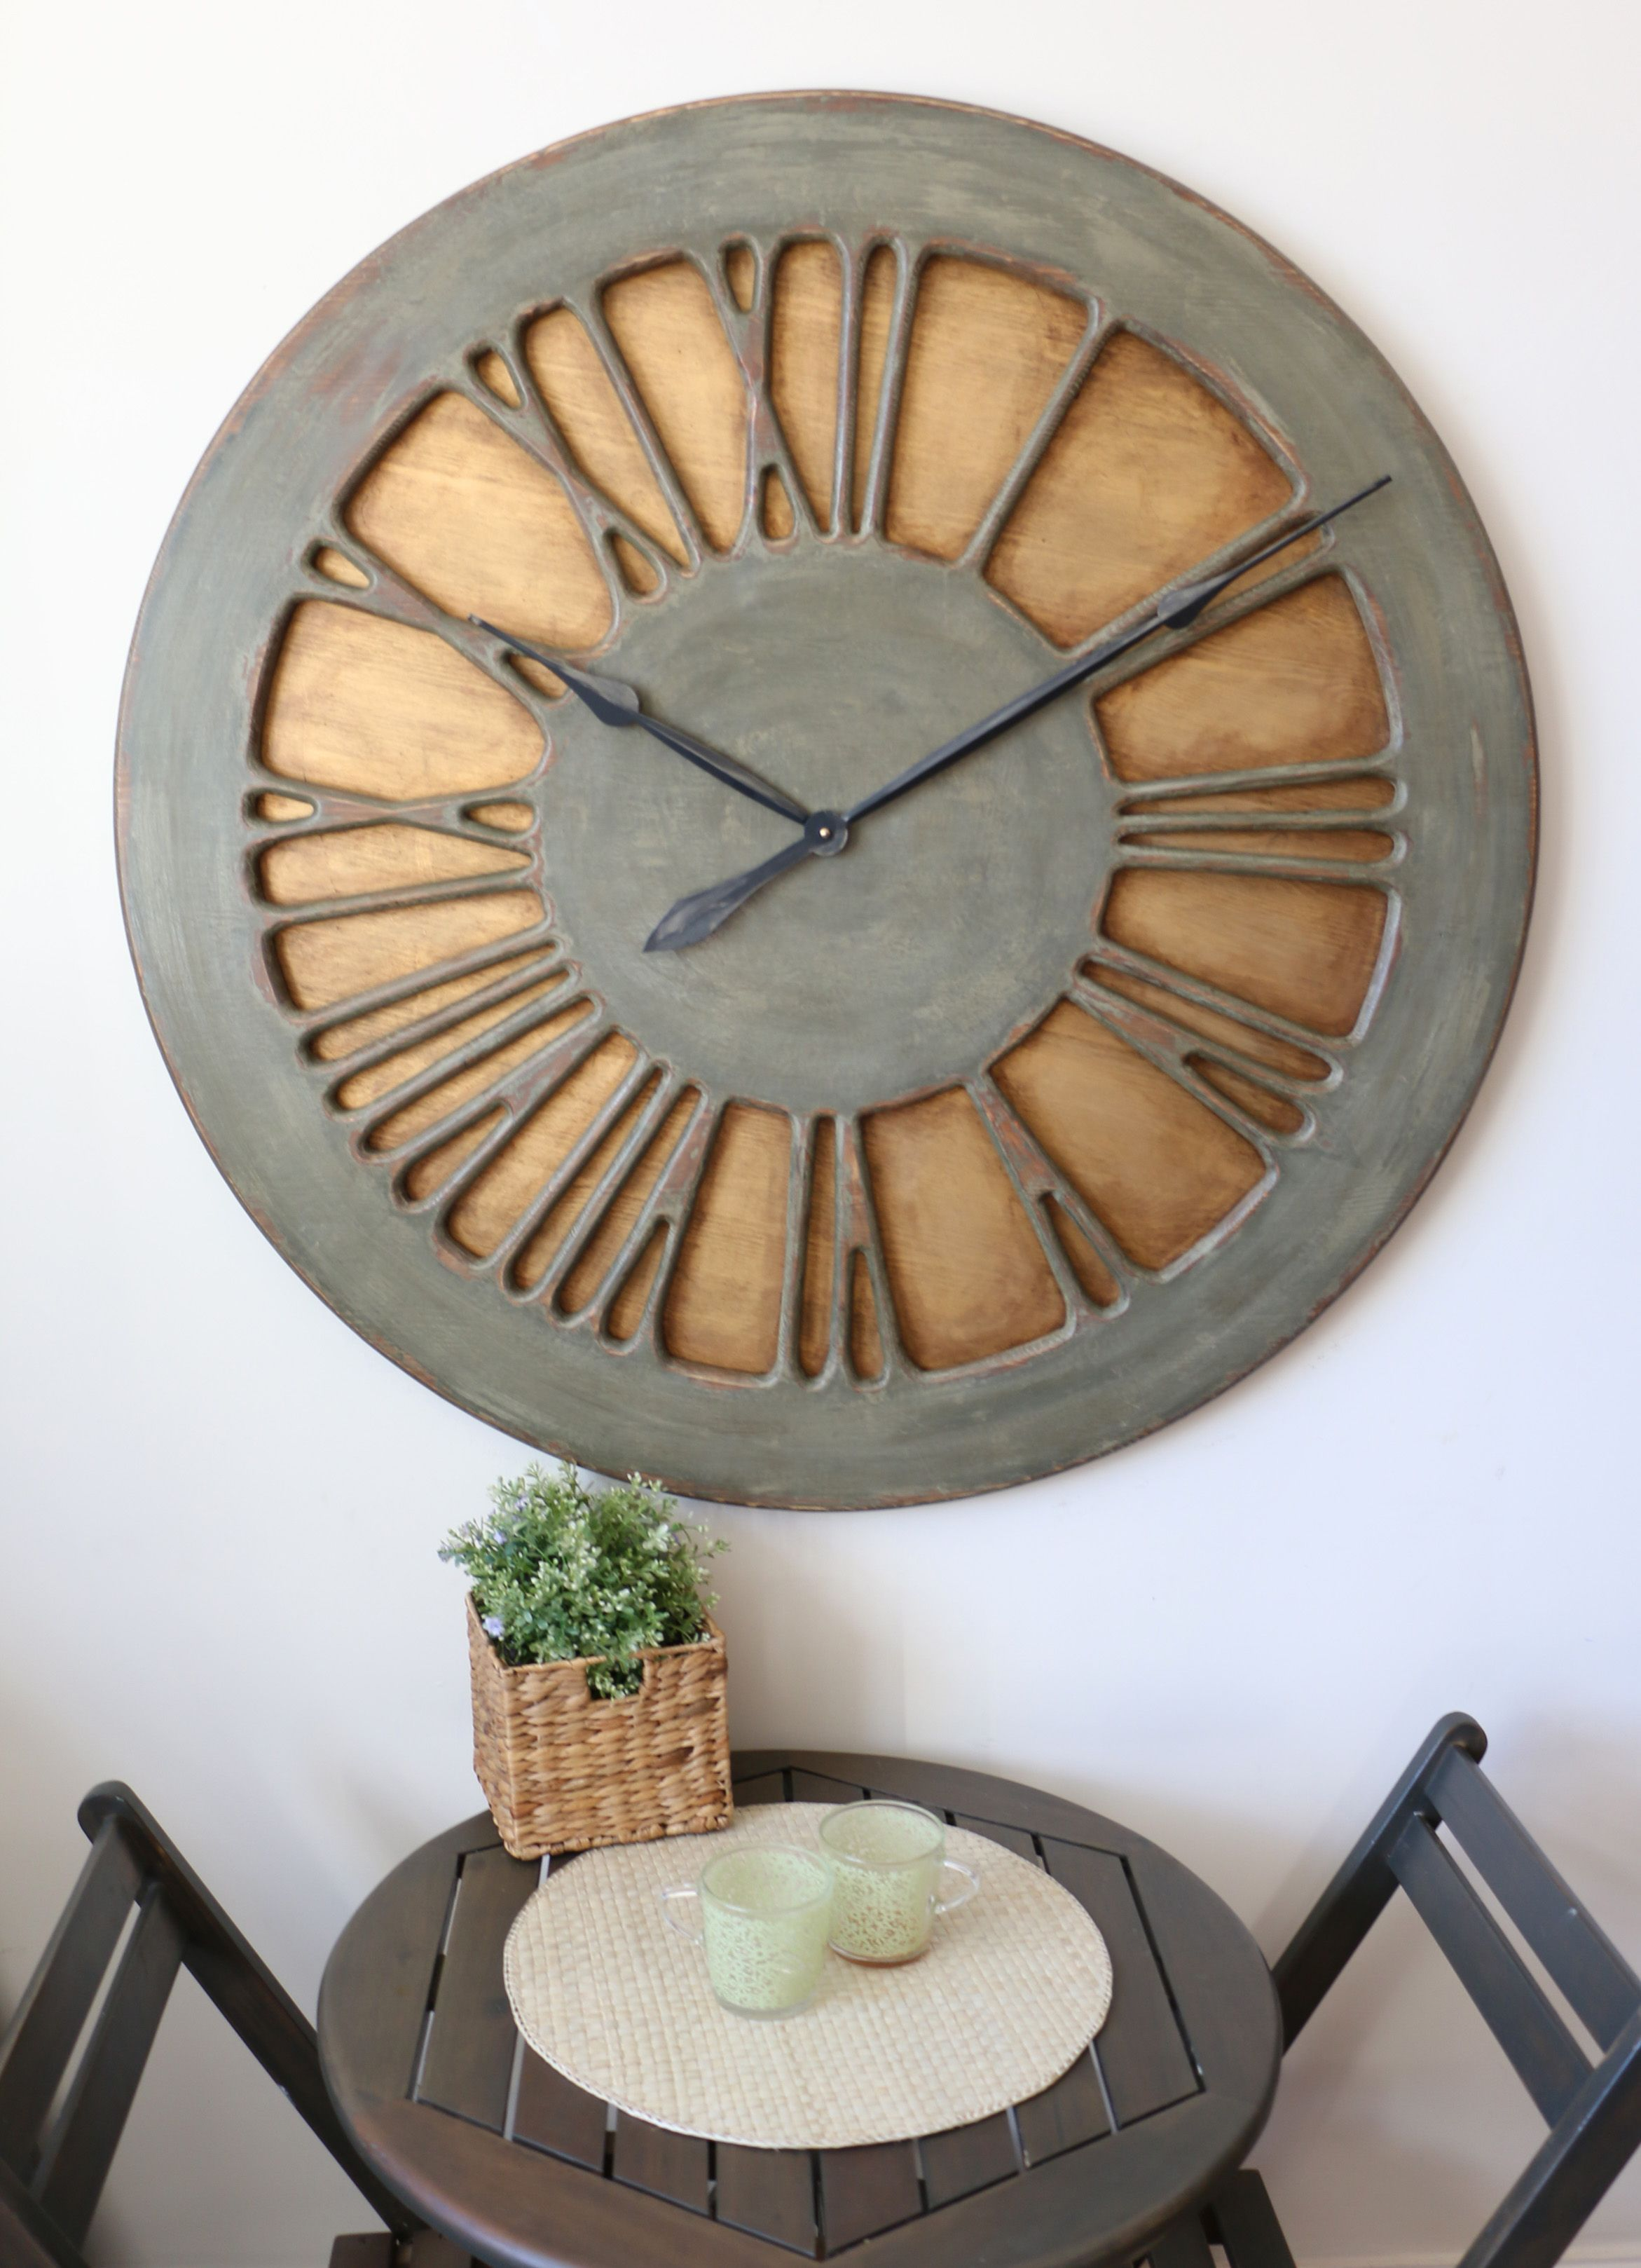 French Wall Clock In Shabby Chic Style Handmade Hand Painted Shabby Chic Centerpieces Clock Home Decor